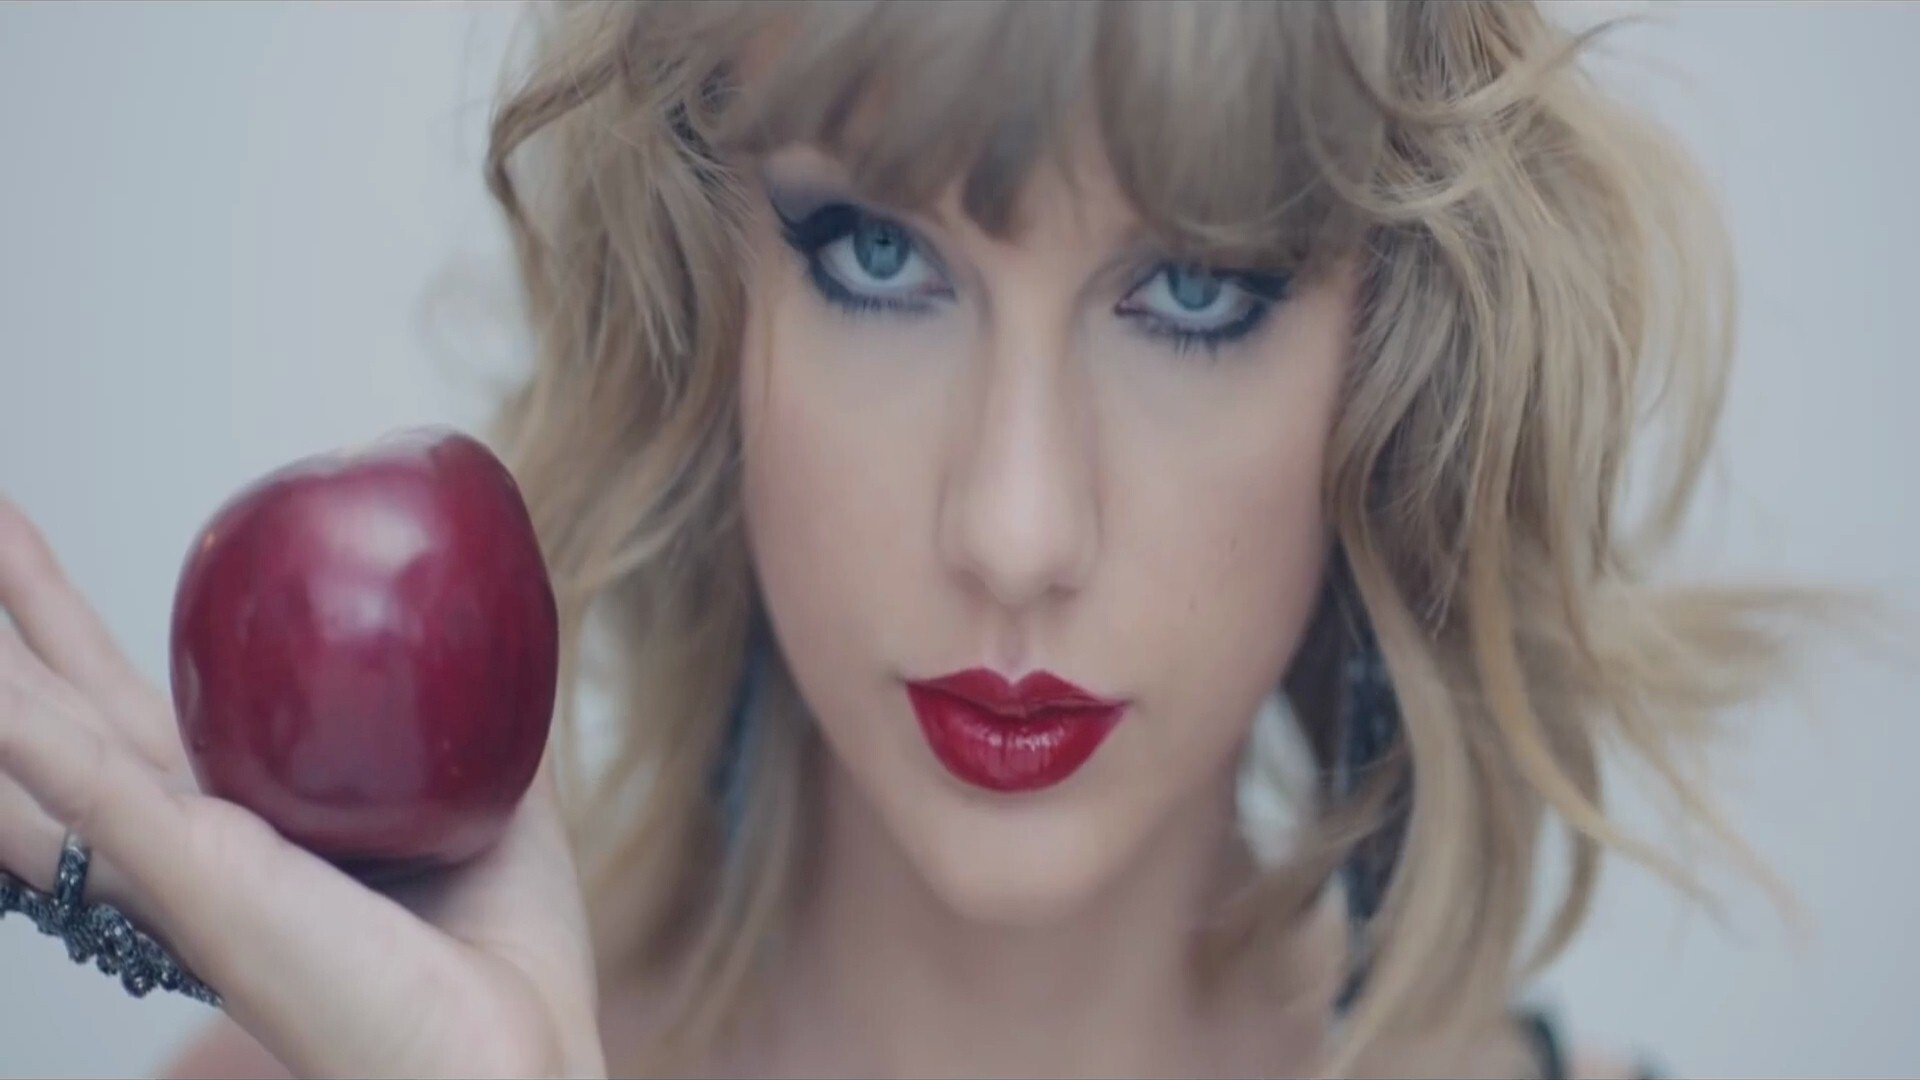 American Famous Singer Taylor Swift With Red Lips And Apple In